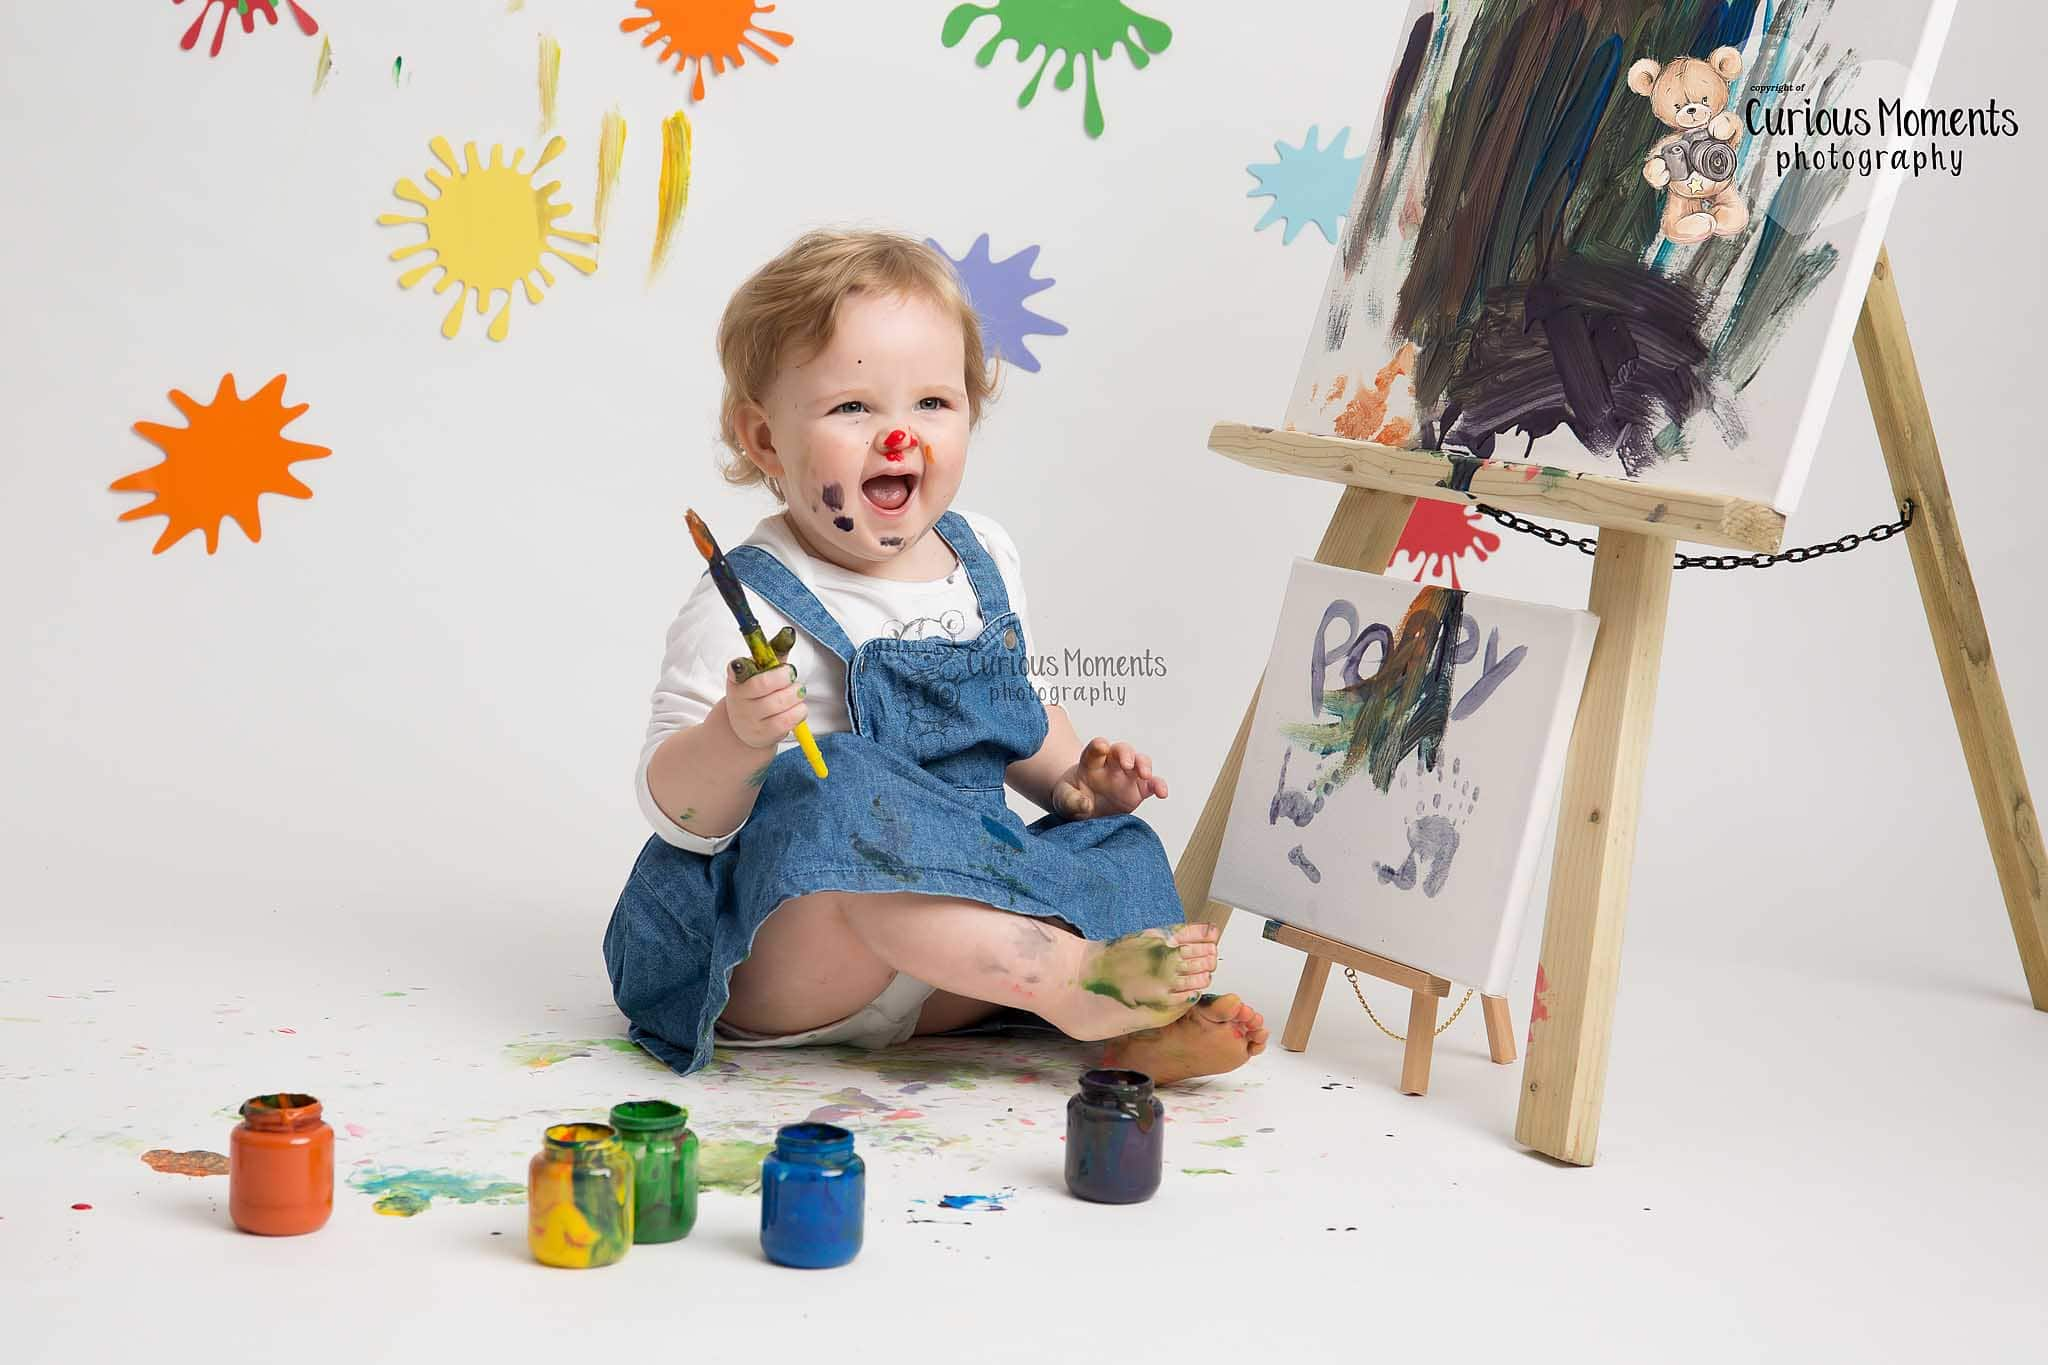 Toddler celebrating her 2nd birthday playing with paints during messy play photoshoot